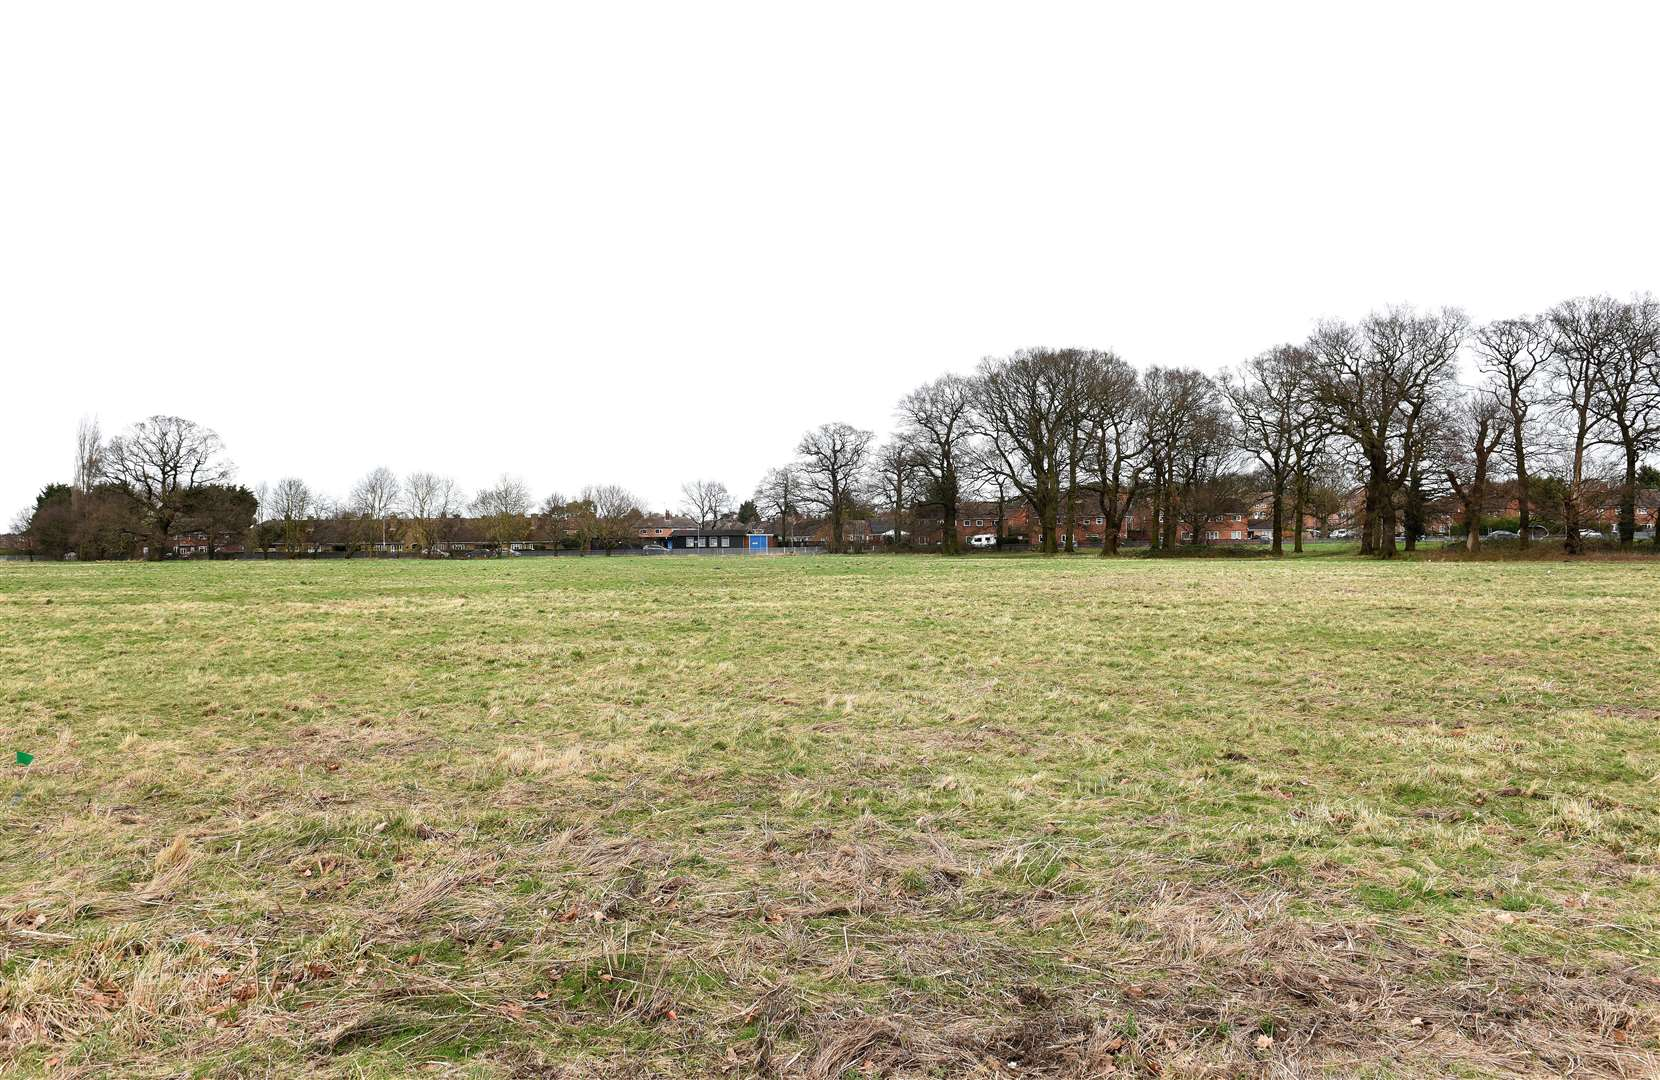 GV Picture of Land which is being Proposed for Possible New Housing Development for the Gaywood Area...Land next to King's Lynn Academy Site on Queen Mary Road/Parkway, looking towards Parkway. (49550520)